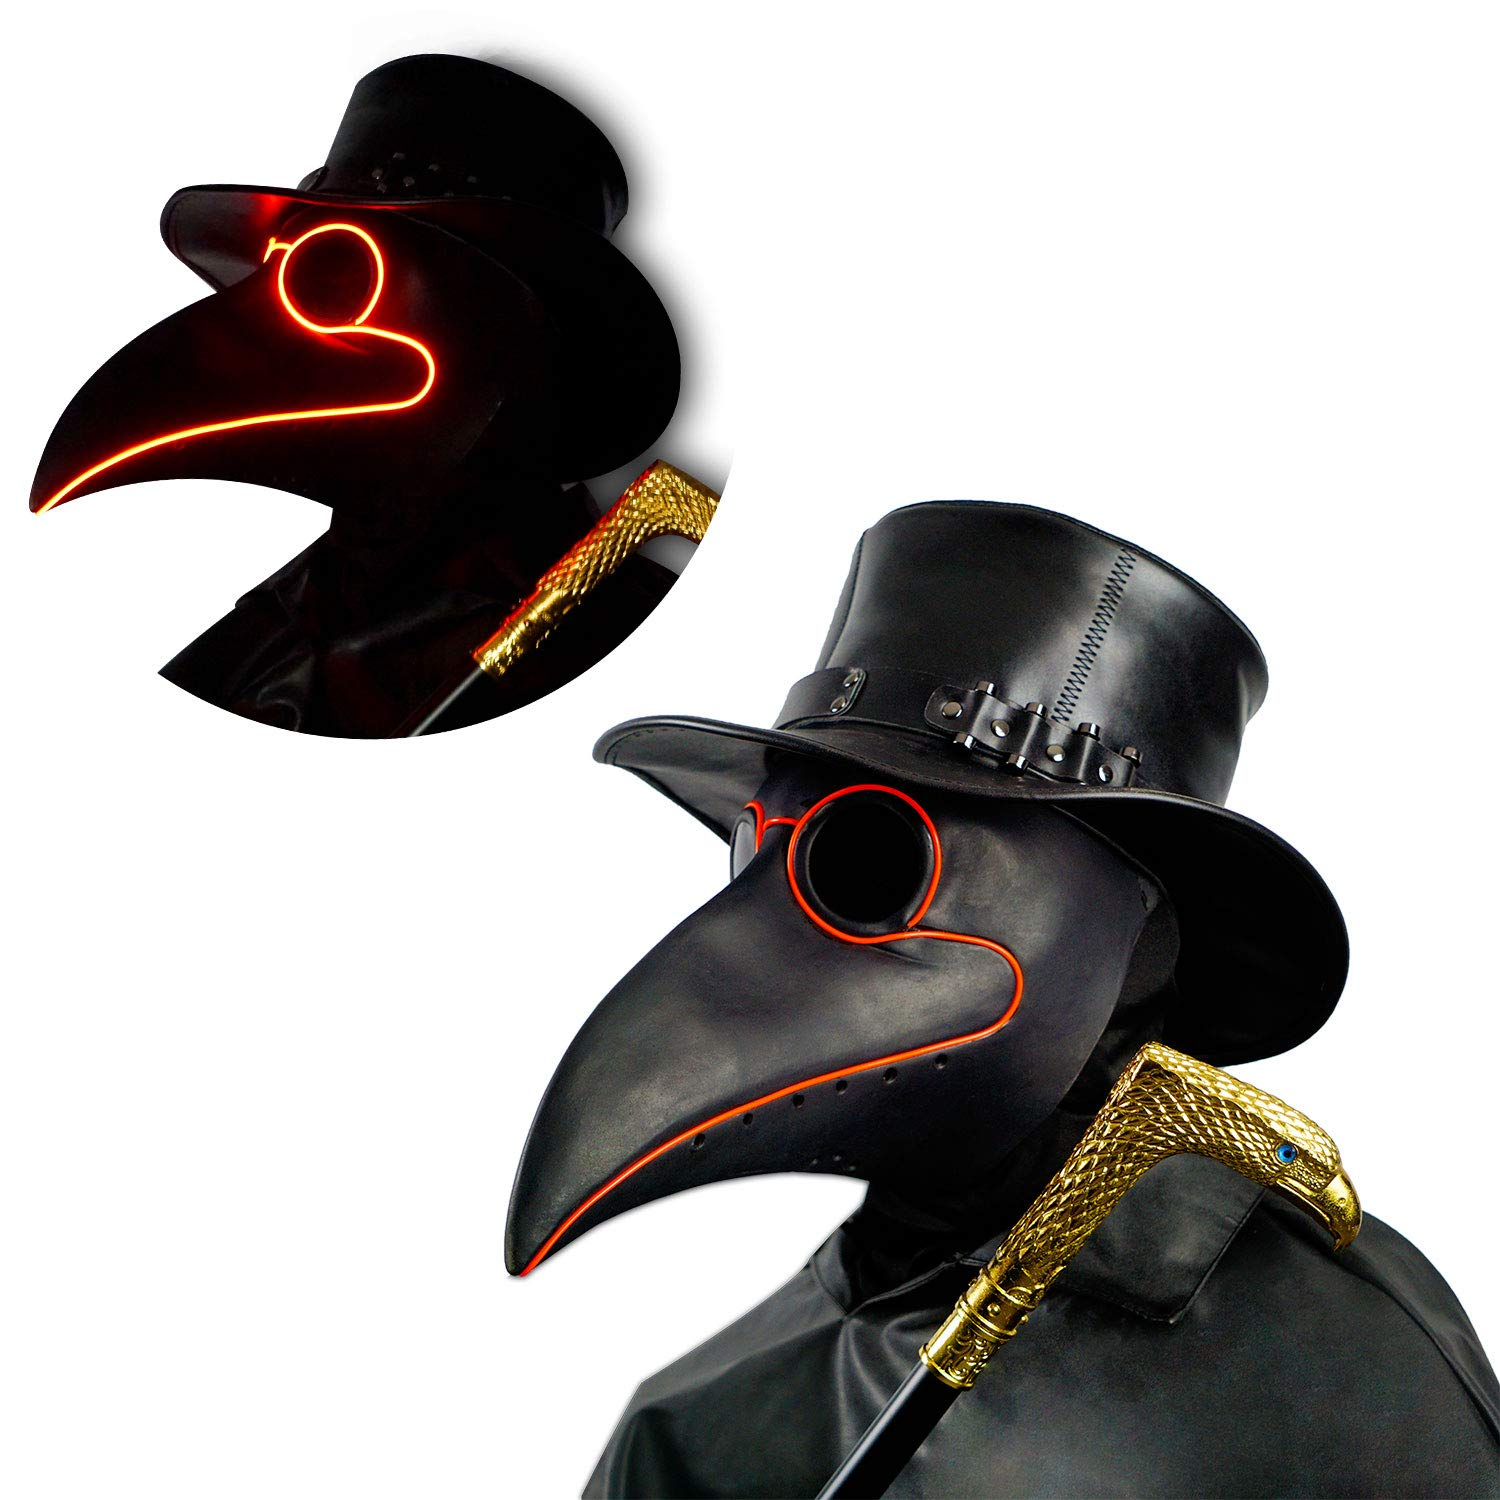 PartyHop LED Black Rubber Plague Doctor Mask Light Up, Halloween Long Nose Bird Beek Steampunk Gas Latex Face Mask, Party Cosplay Costume Prop for Kids and Adult